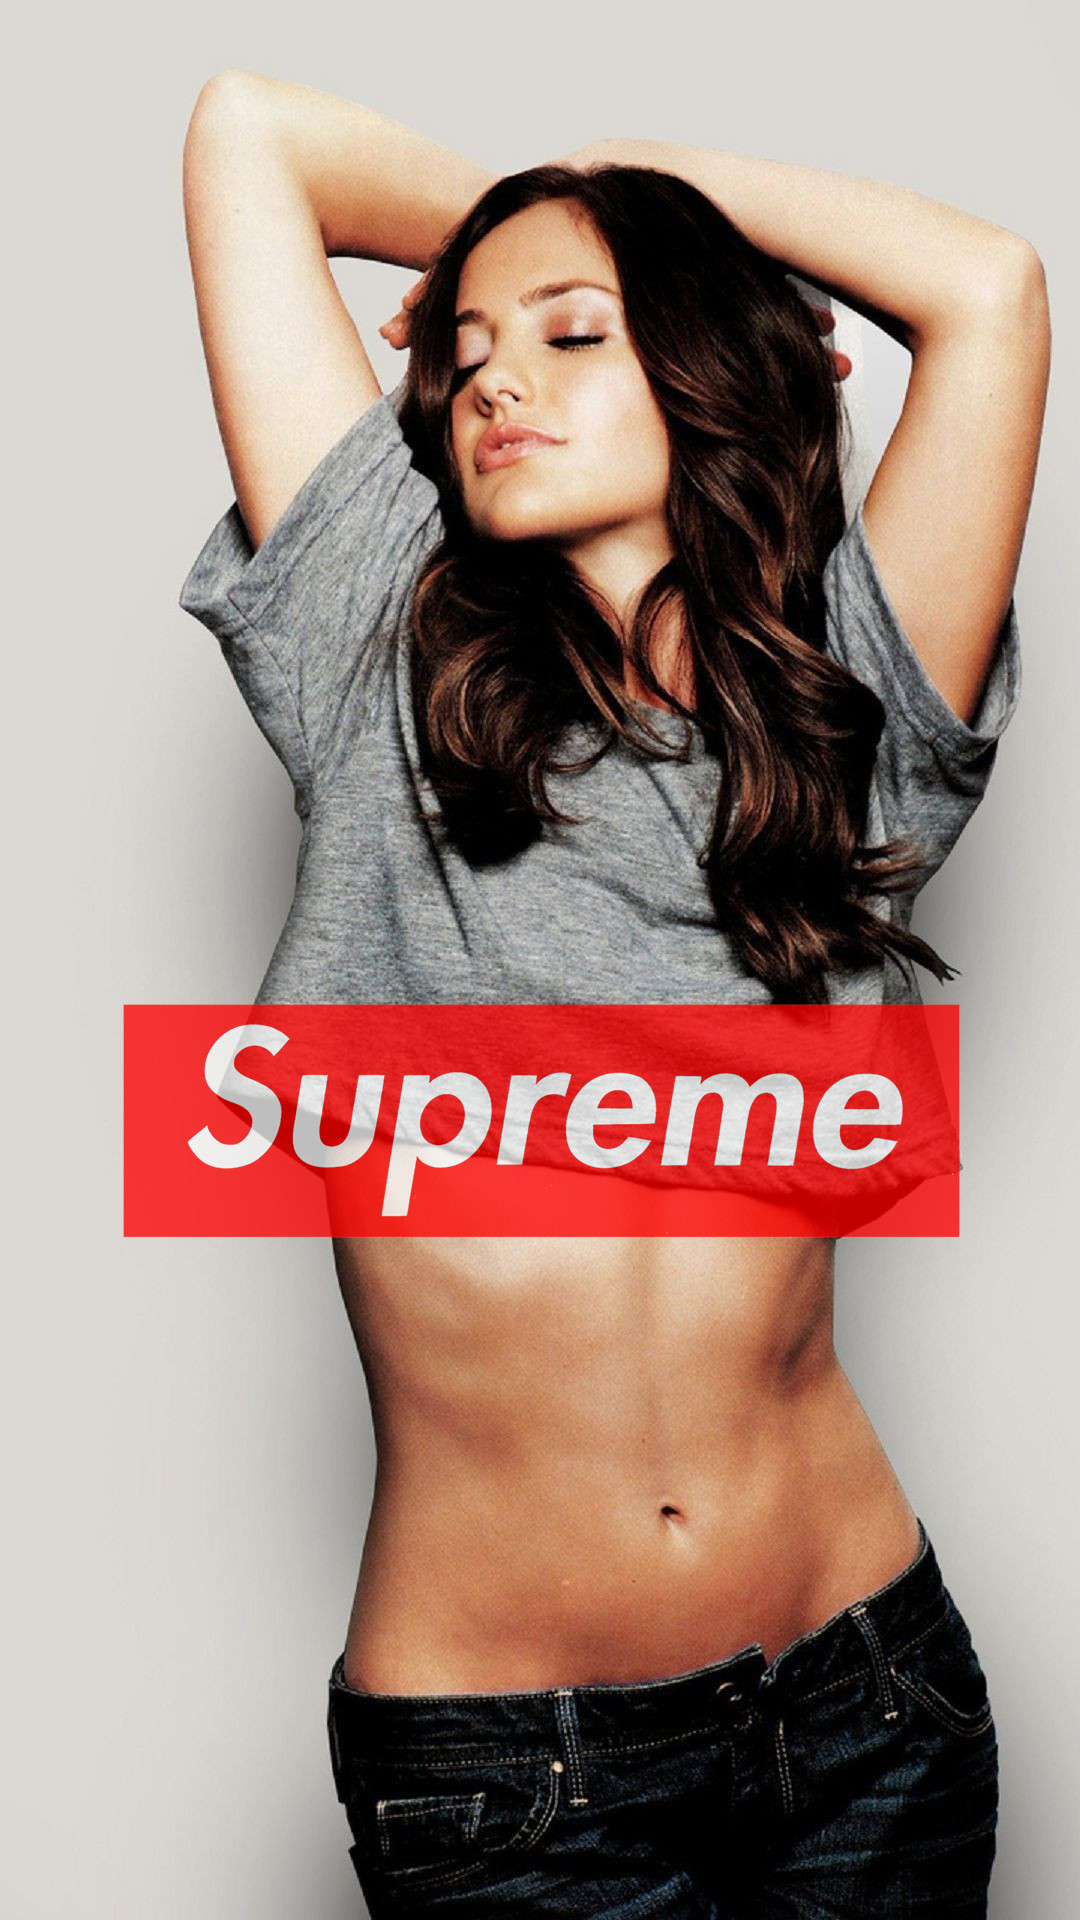 1080x1920 Pin von Marco_Mayo_233 auf Supreme girls❤ | Pinterest | Supreme wallpaper,  Girl iphone wallpaper und Graffiti wallpaper